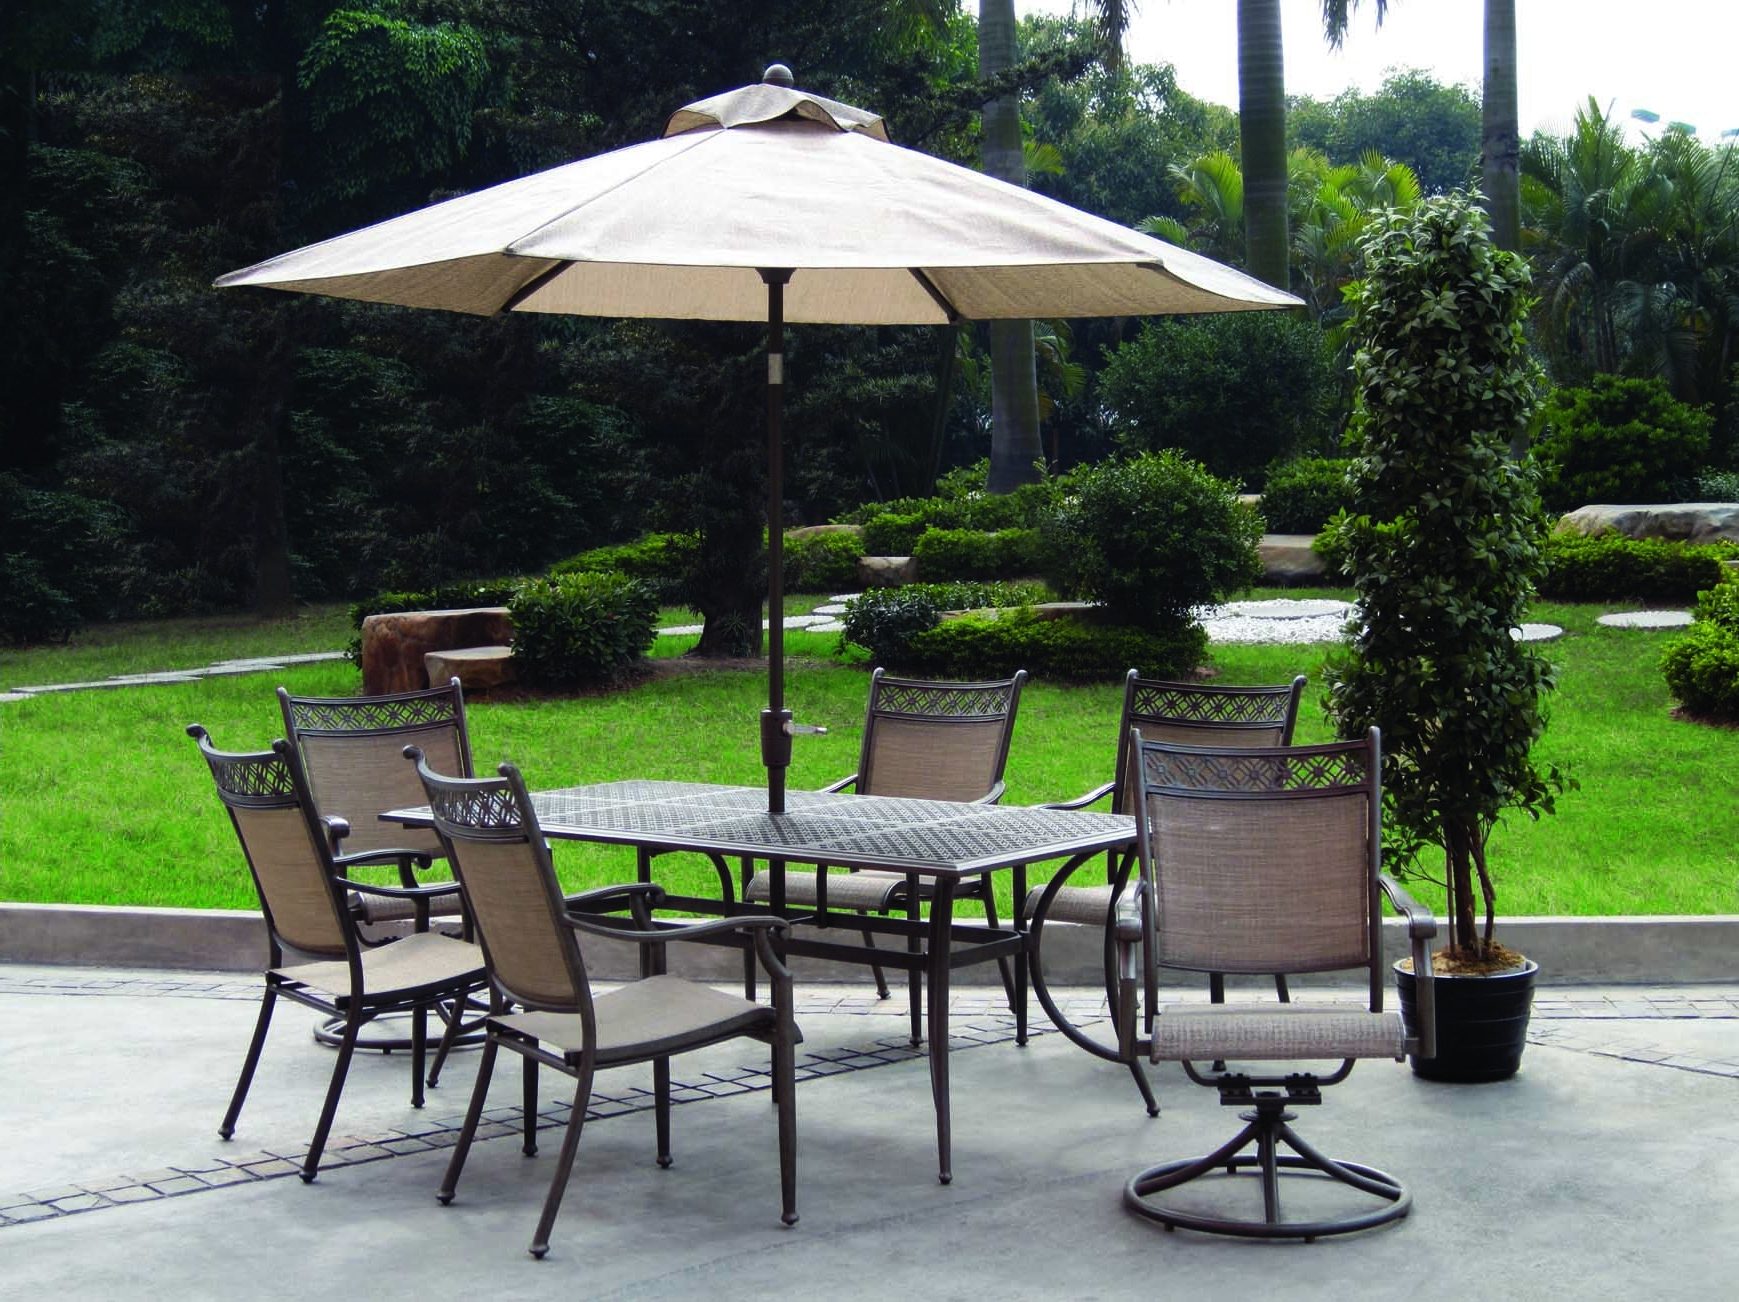 Best And Newest Patio Table And Chairs With Umbrellas Within Home Depot Outdoor Furniture Umbrellas With 2 Swivel Chair Pine (View 3 of 20)